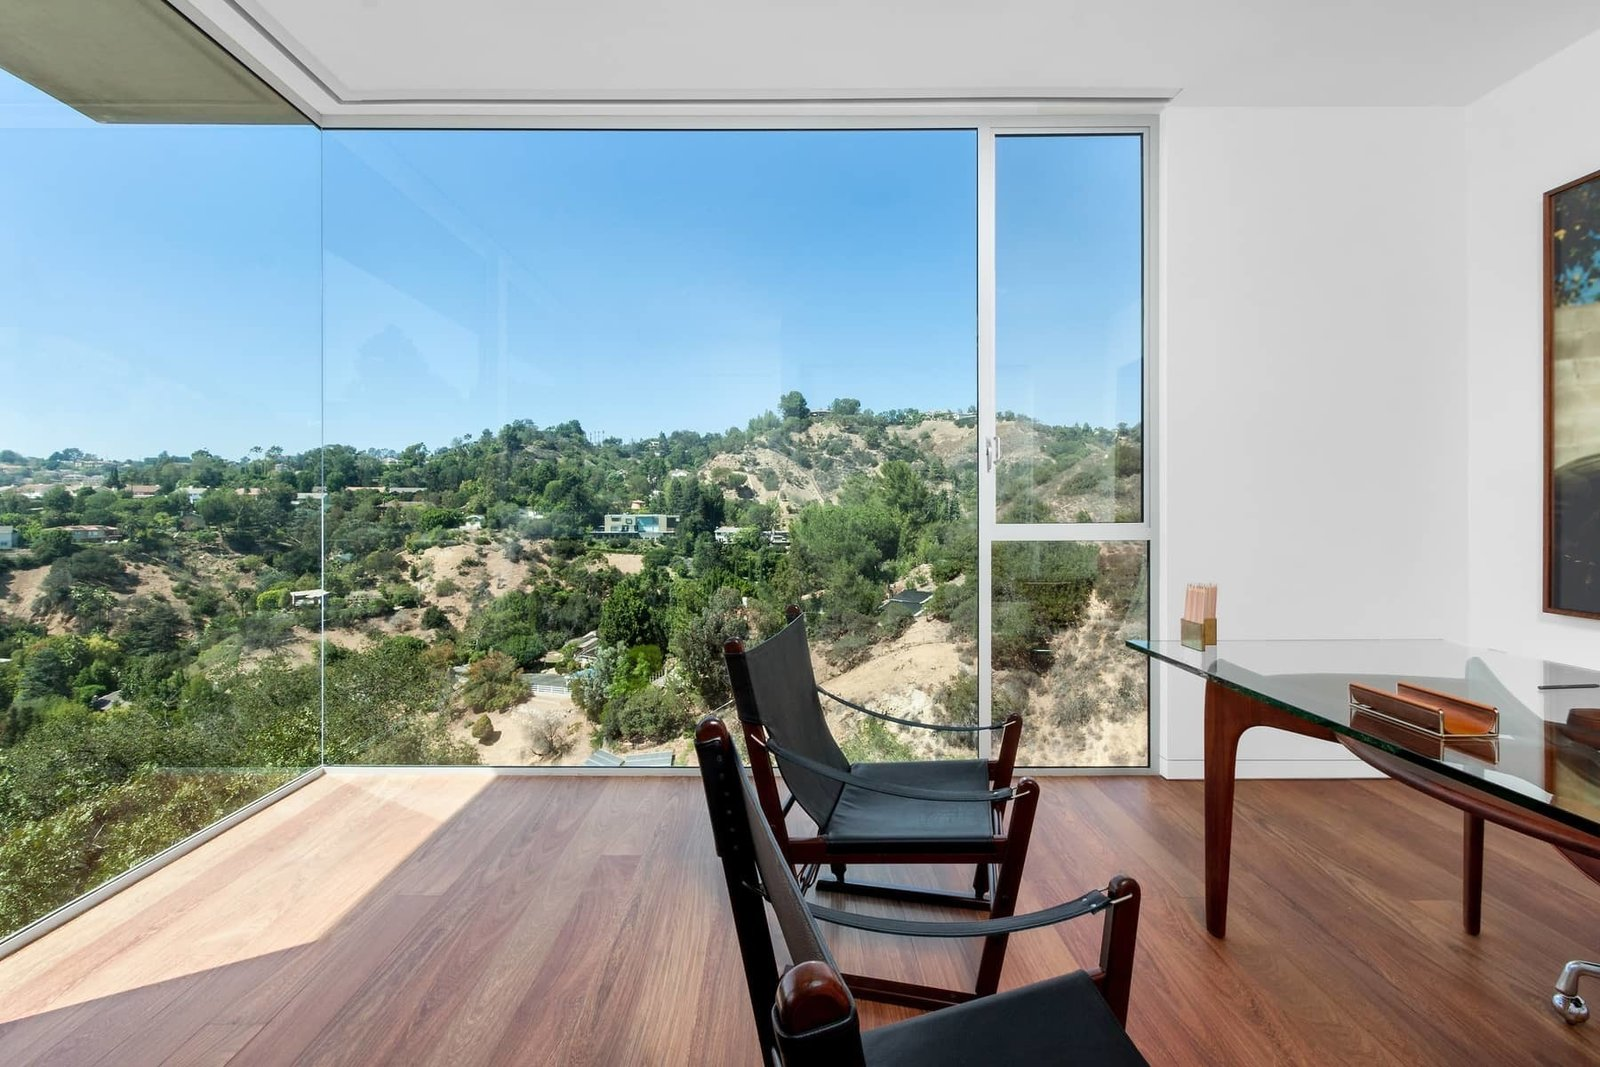 The guest bedroom, shown here as an office, offers an uninterrupted view of the surrounding canyon.